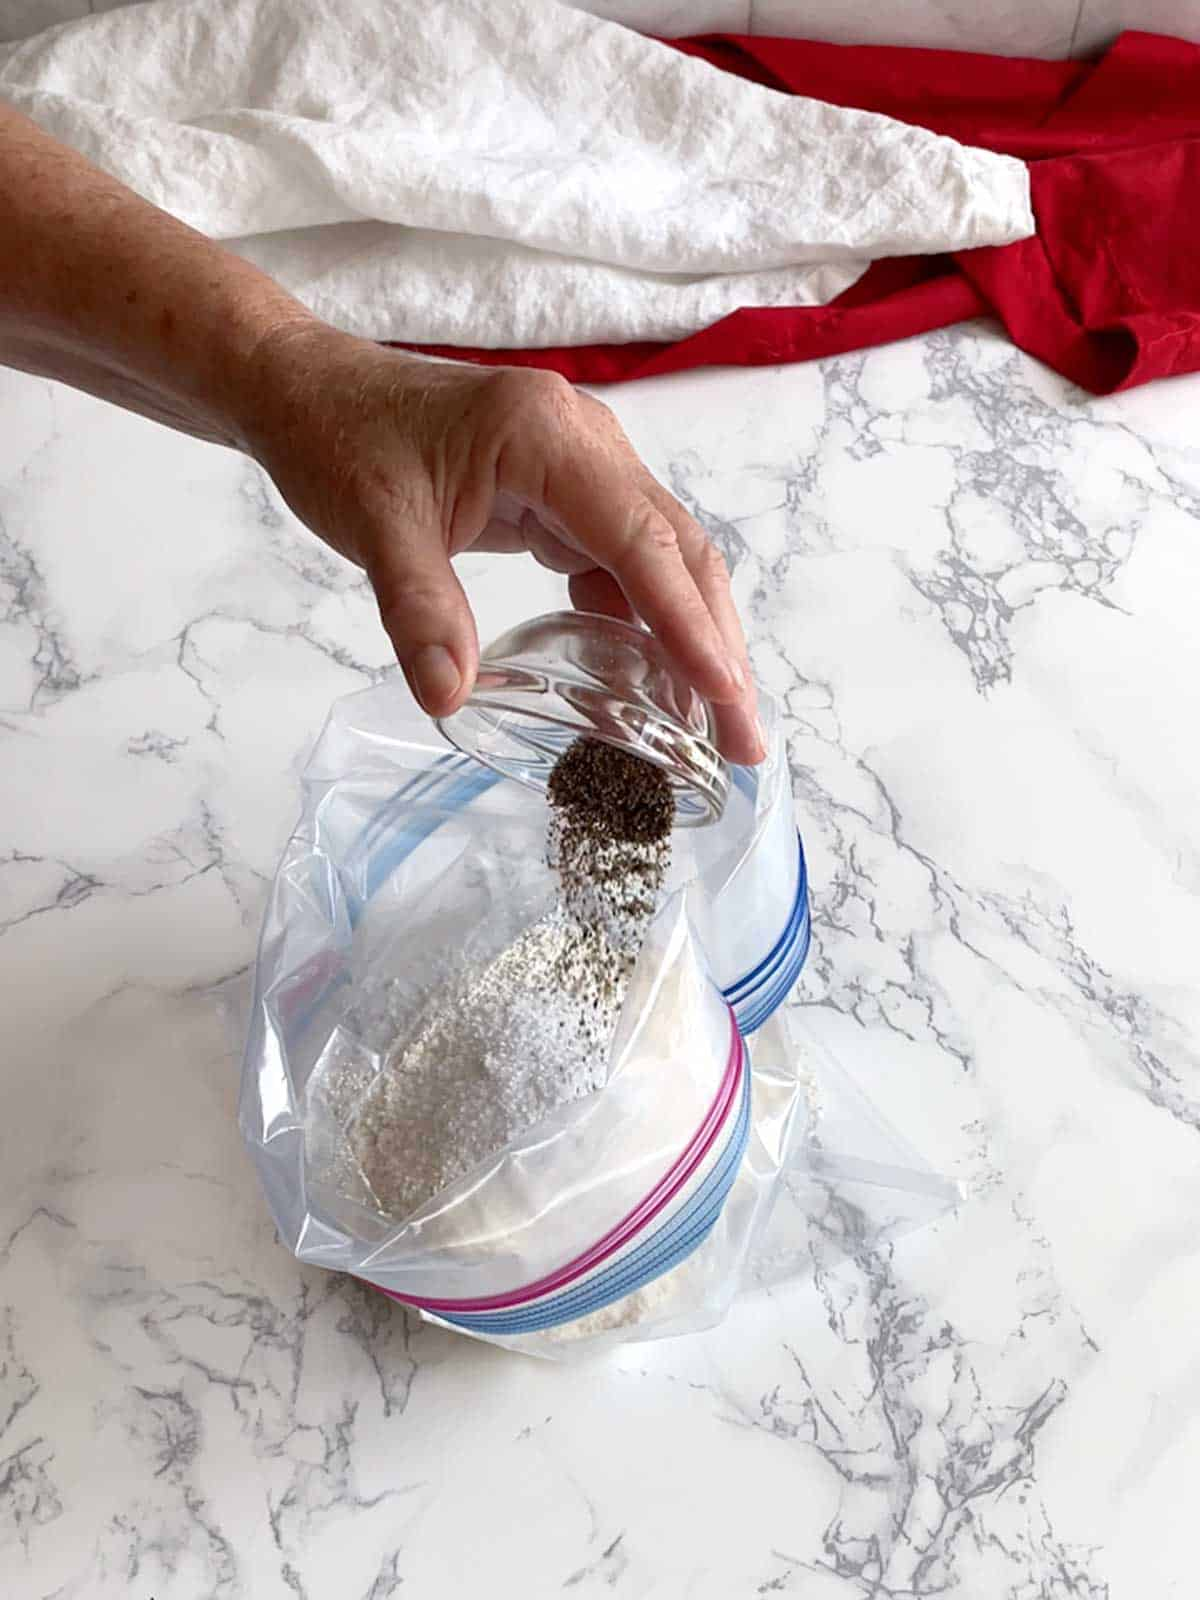 Adding pepper to Ziploc bag with flour and salt.